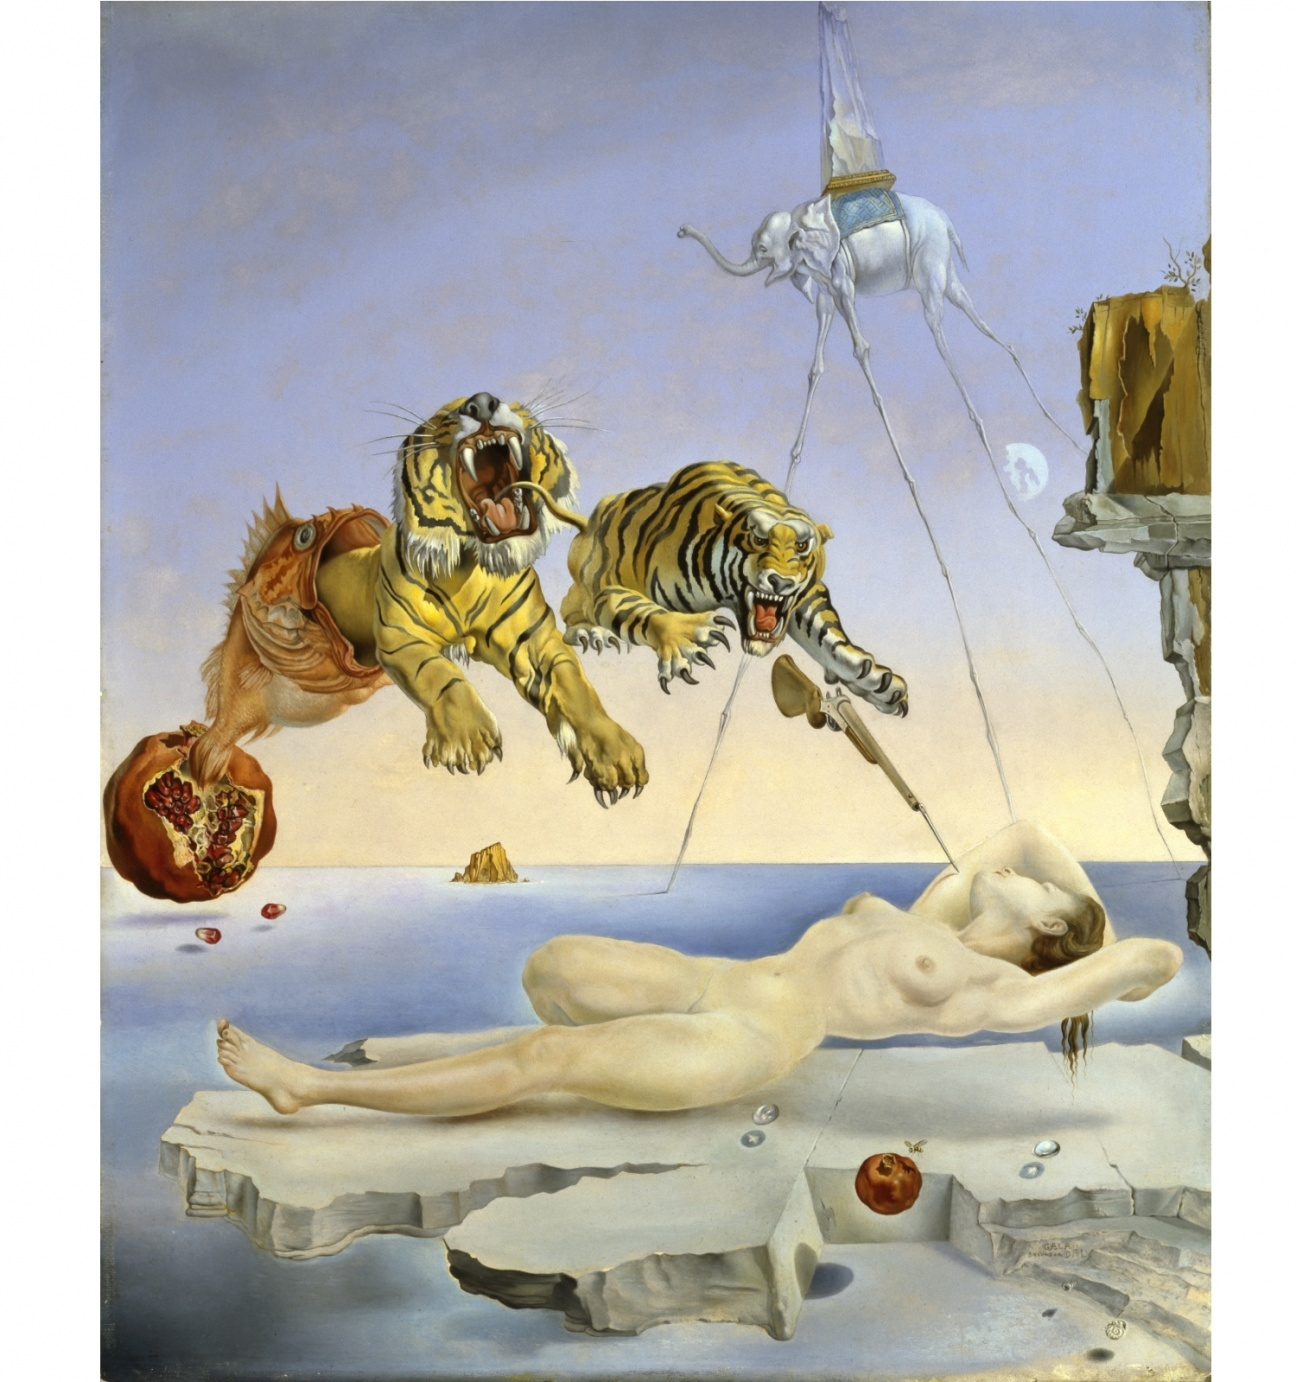 Salvador Dalí. Dream caused by the Flight of a Bee Around a Pomegranate one second before awakening, c. 1944. Museo Nacional Thyssen-Bornemisza, Madrid. © Salvador Dalí, Fundació Gala-Salvador Dalí, VEGAP, Barcelona, 2018